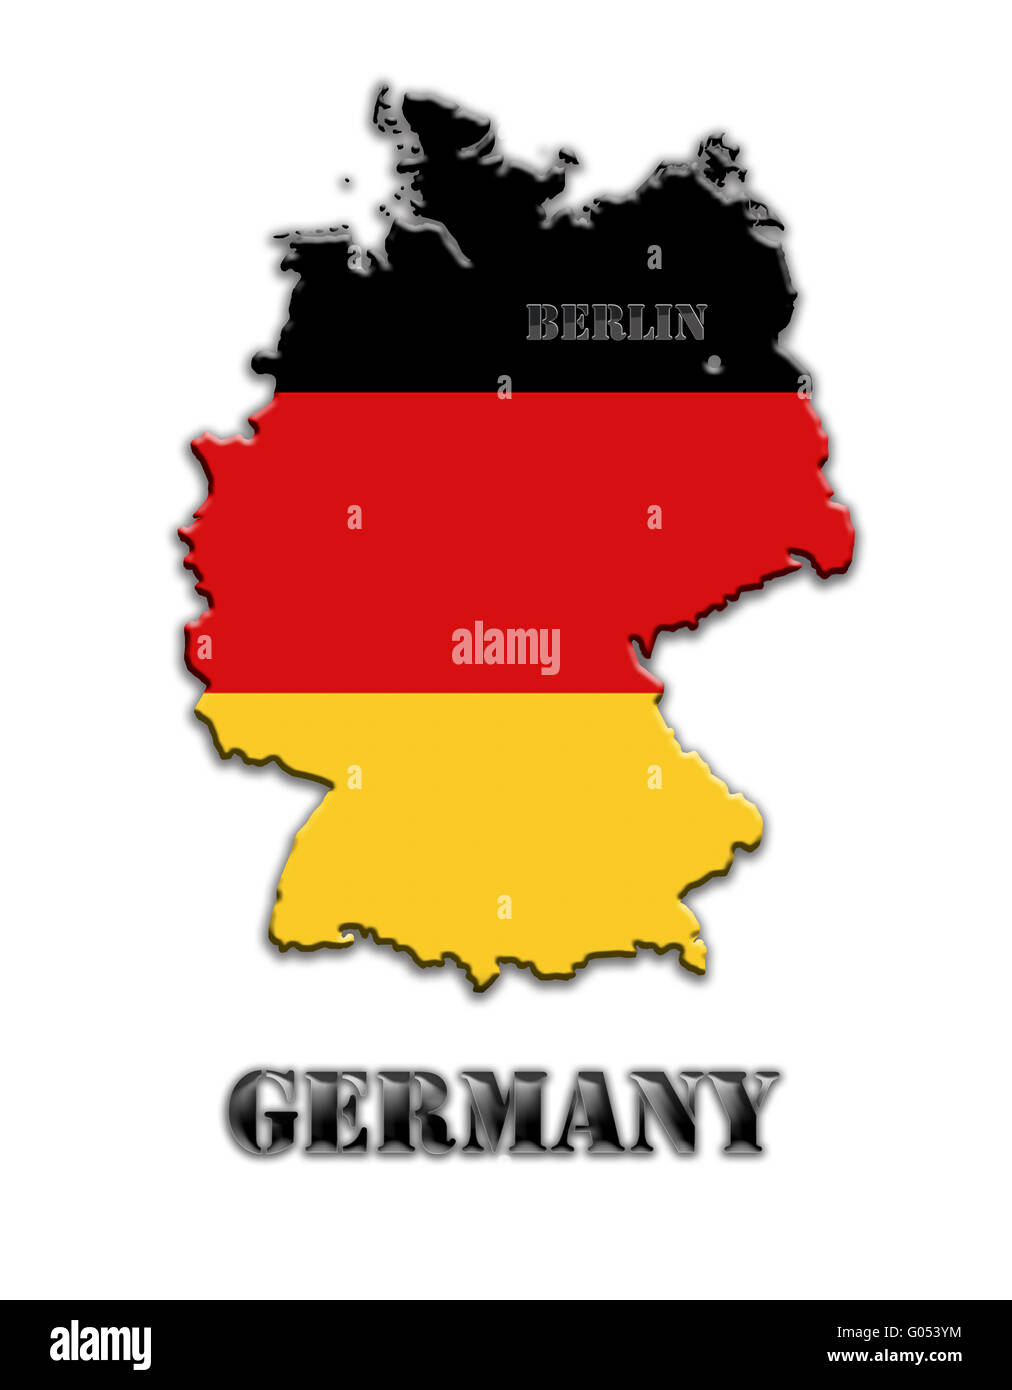 colored map of Germany - Stock Image